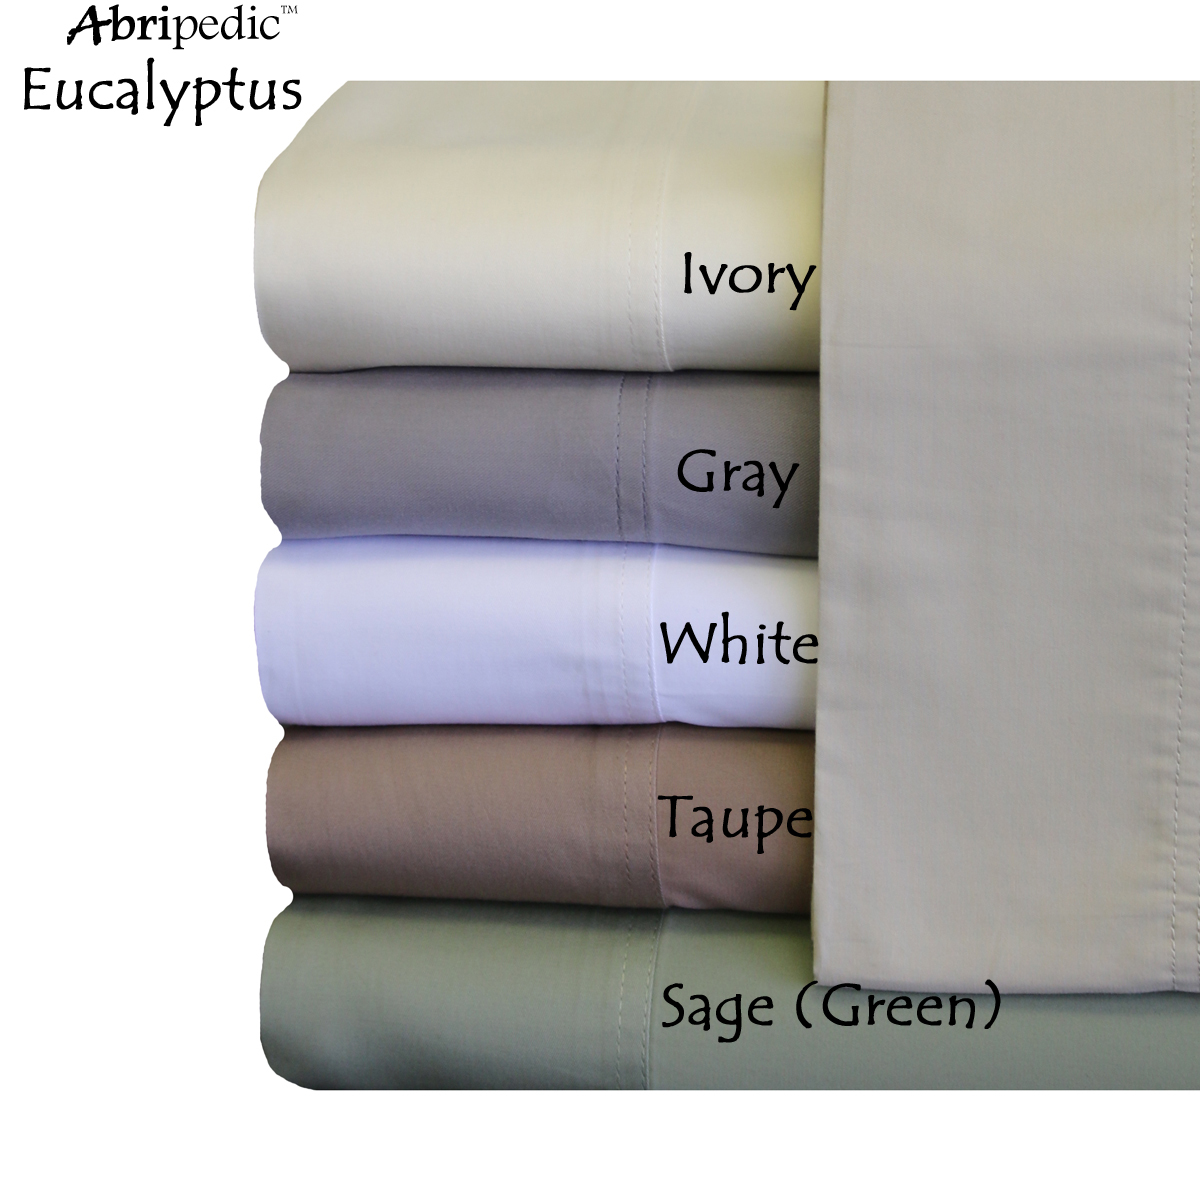 Luxurious & Breathable Abripedic 100-Percent Tencel Lyocell Sheets from Eucalyptus trees Soft & Cool Sheets Collections